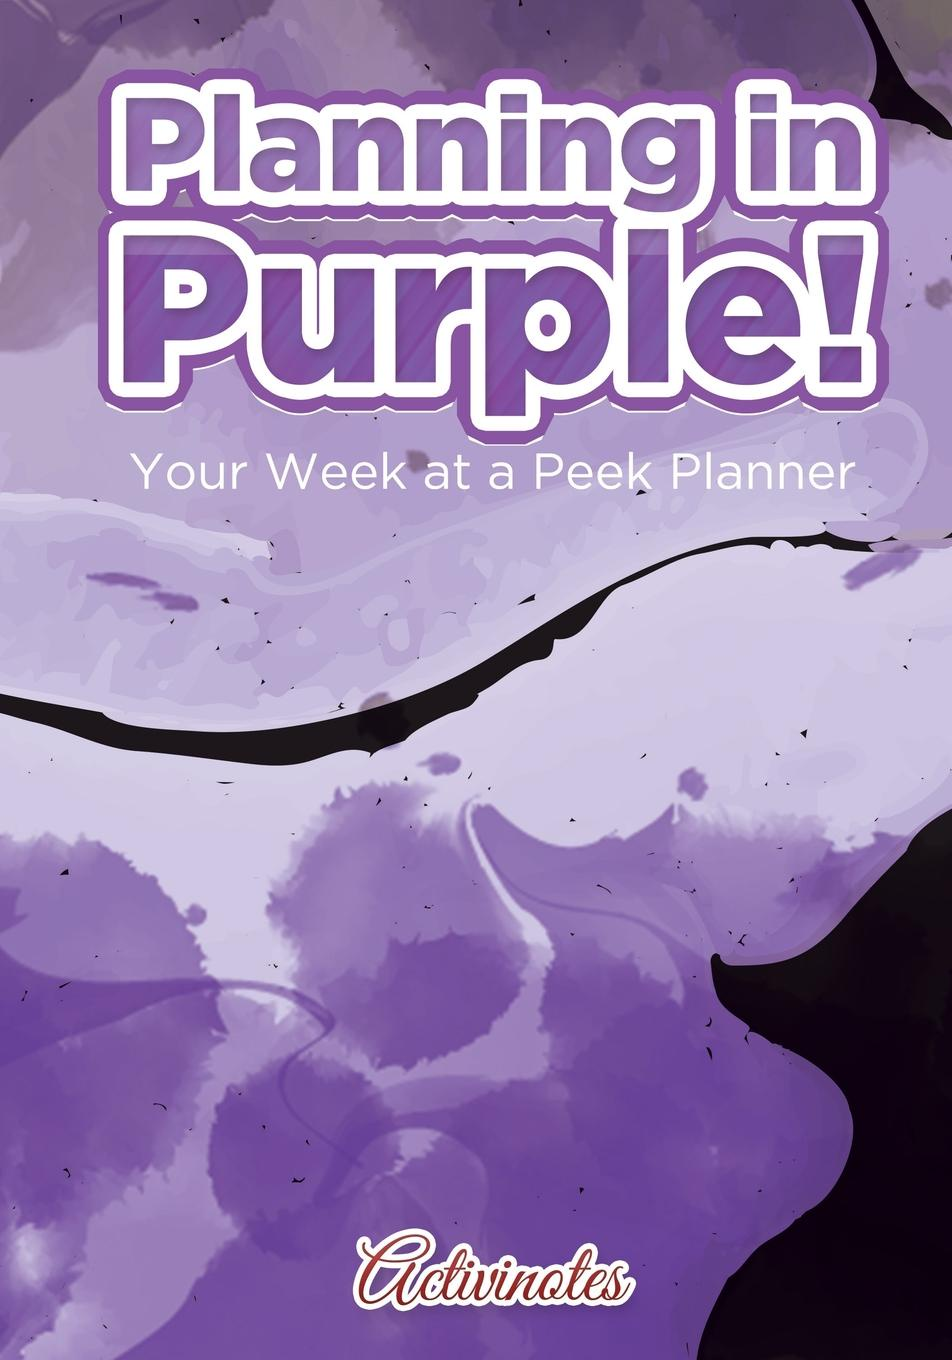 Activinotes Planning in Purple! Your Week at a Peek Planner week planner wall decal